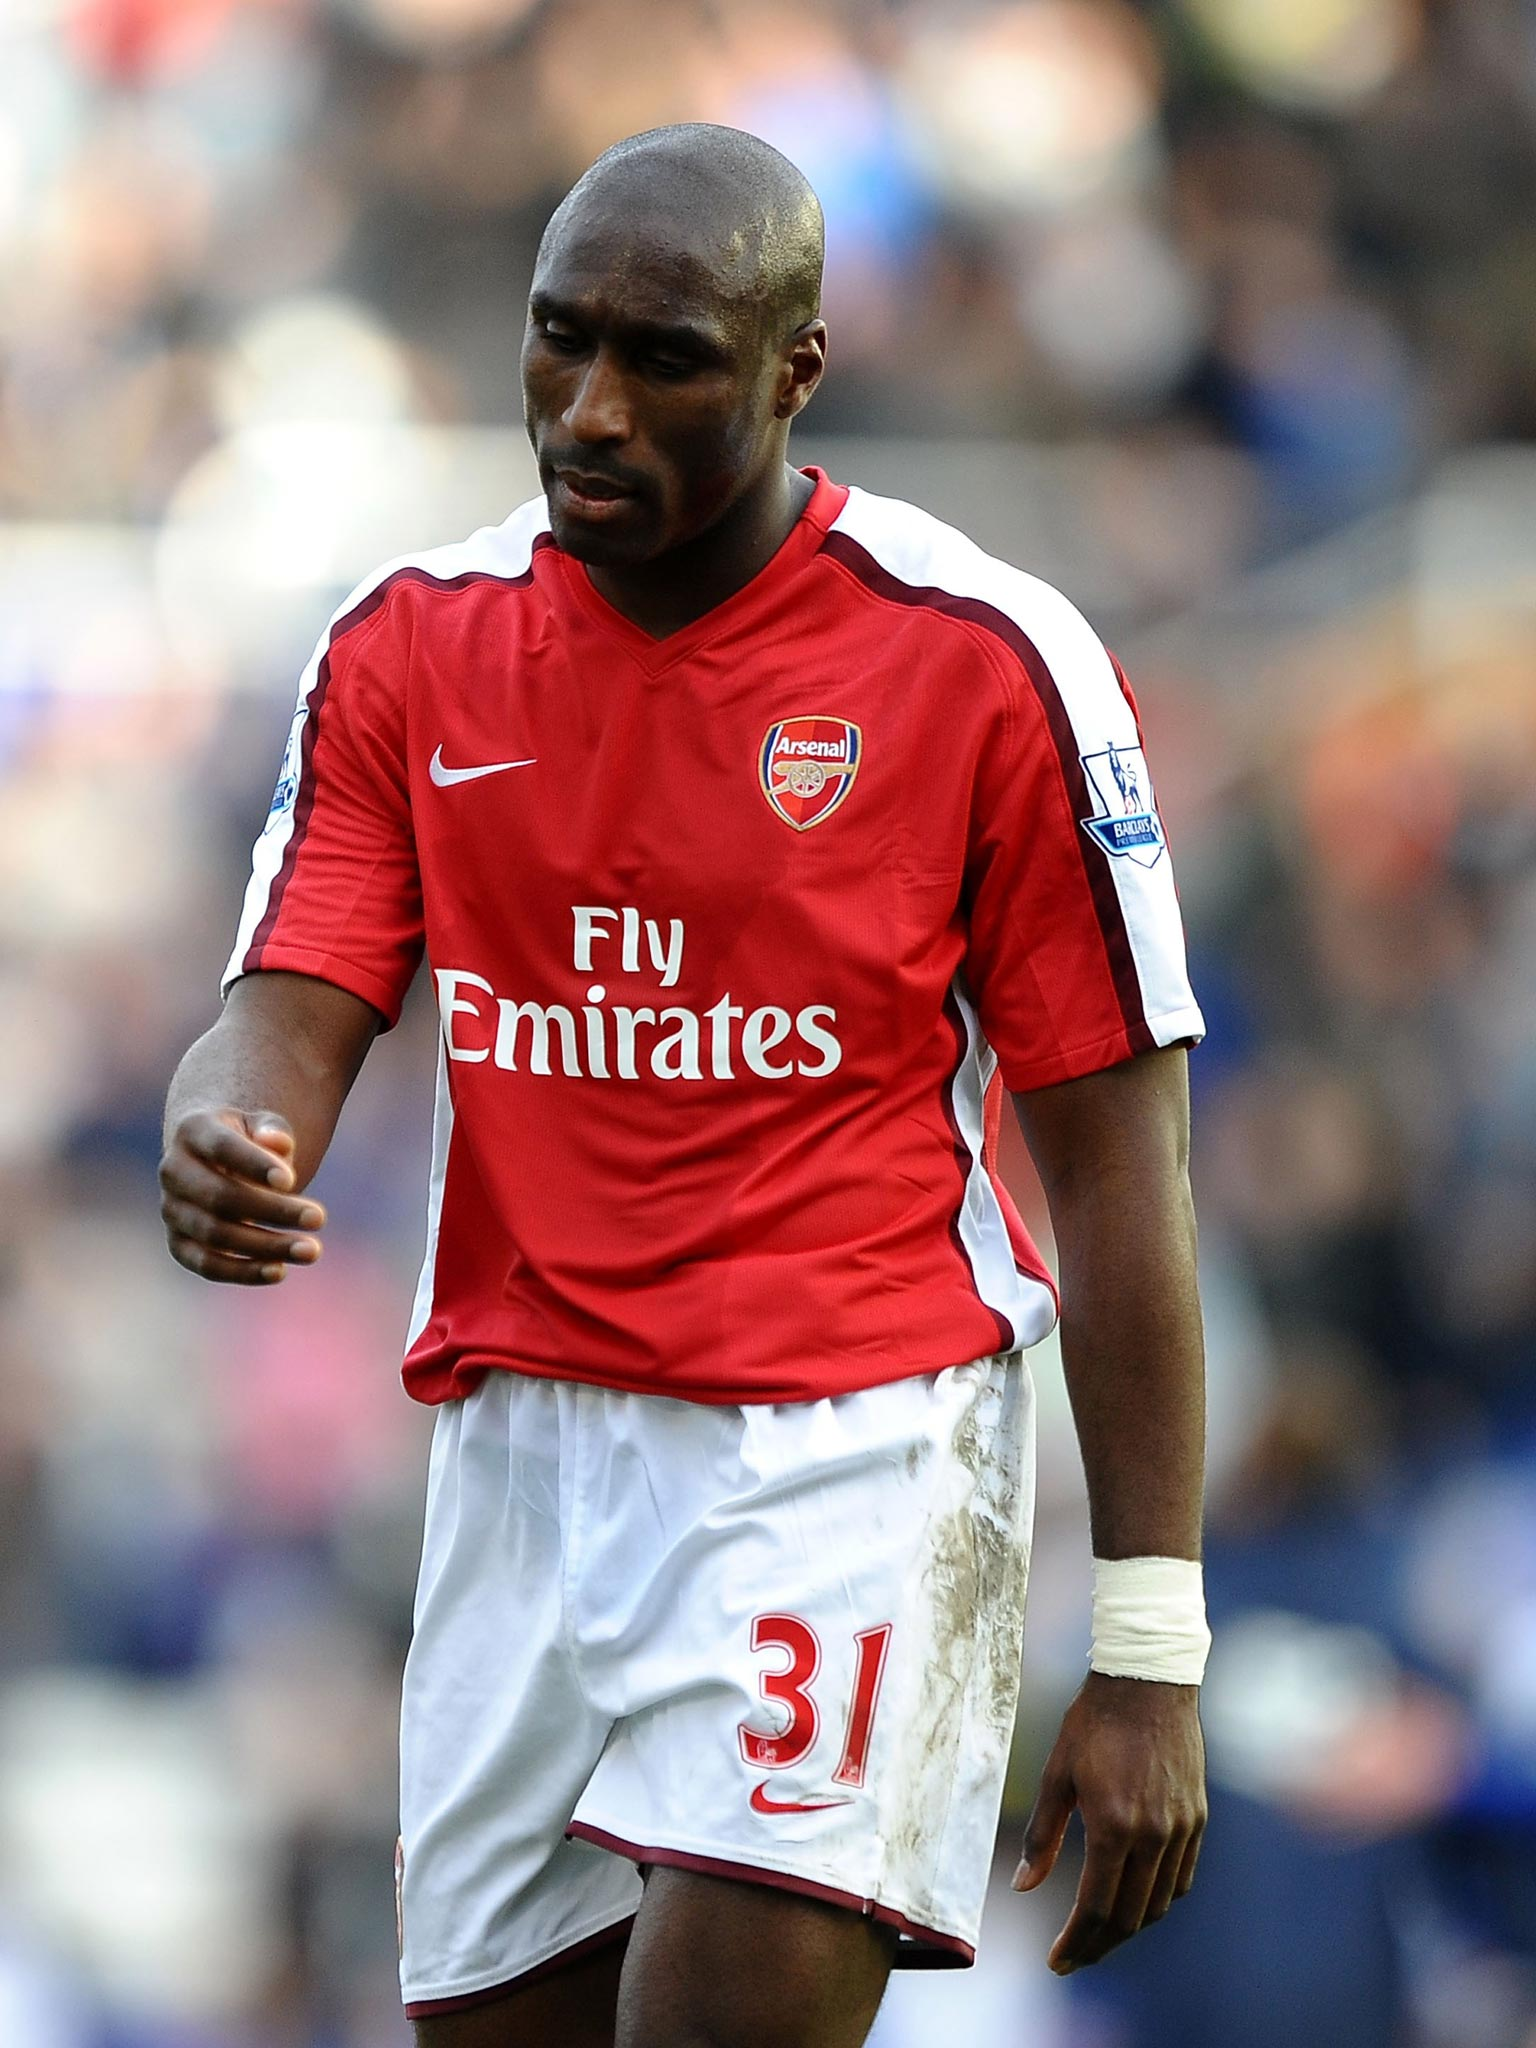 tottenham v arsenal sol campbell comes across as tortured and